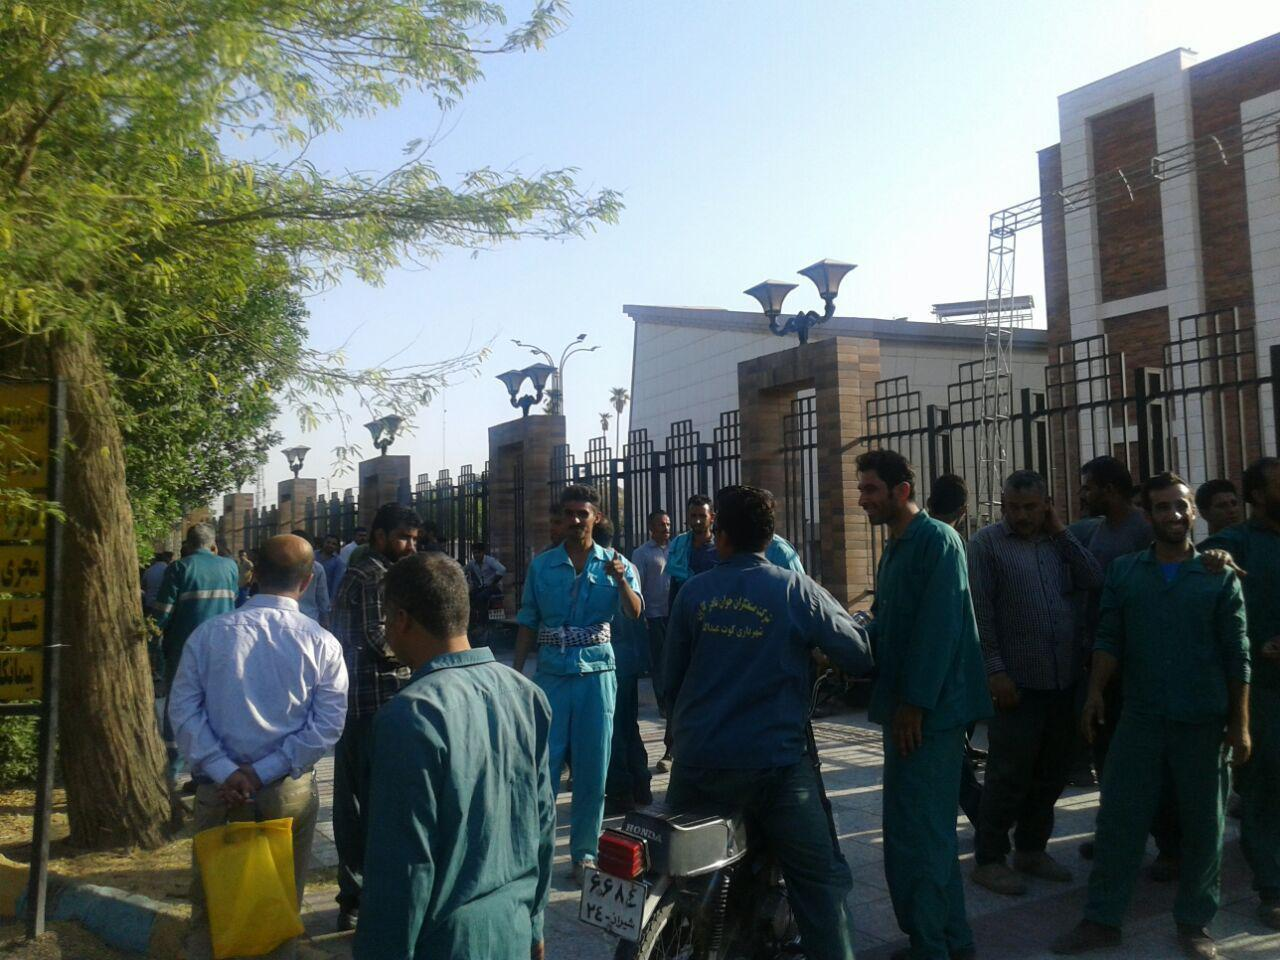 Ahwazi city workers' protest